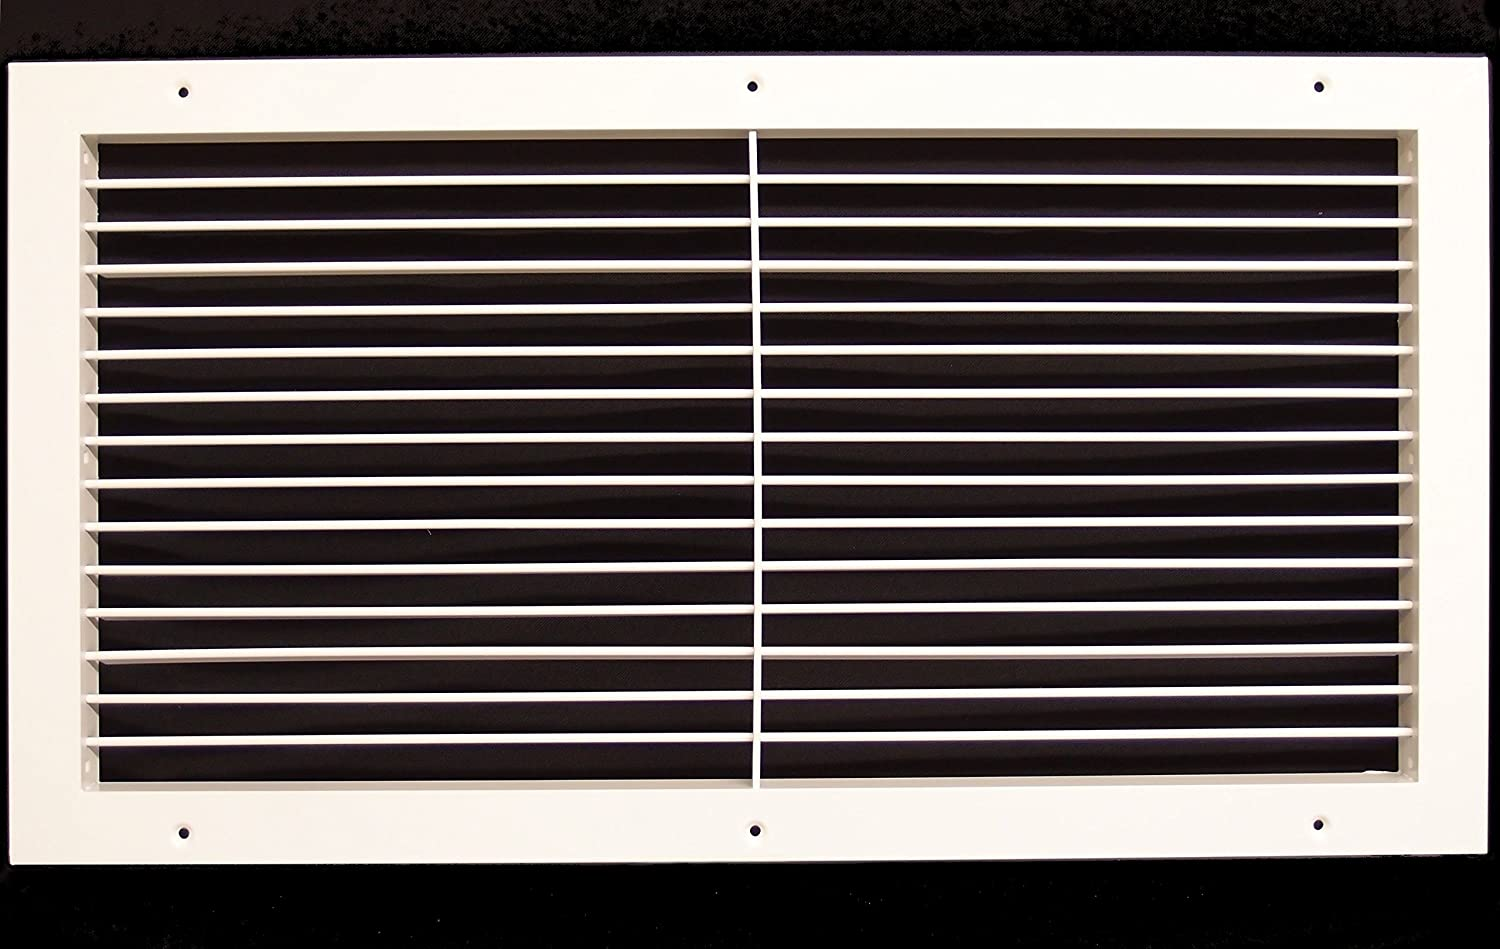 "30""w X 10""h Aluminum Adjustable Return/Supply HVAC Air Grille - Full Control Horizontal Airflow Direction - Vent Duct Cover - Single Deflection [Outer Dimensions: 31.85""w X 11.85""h]"